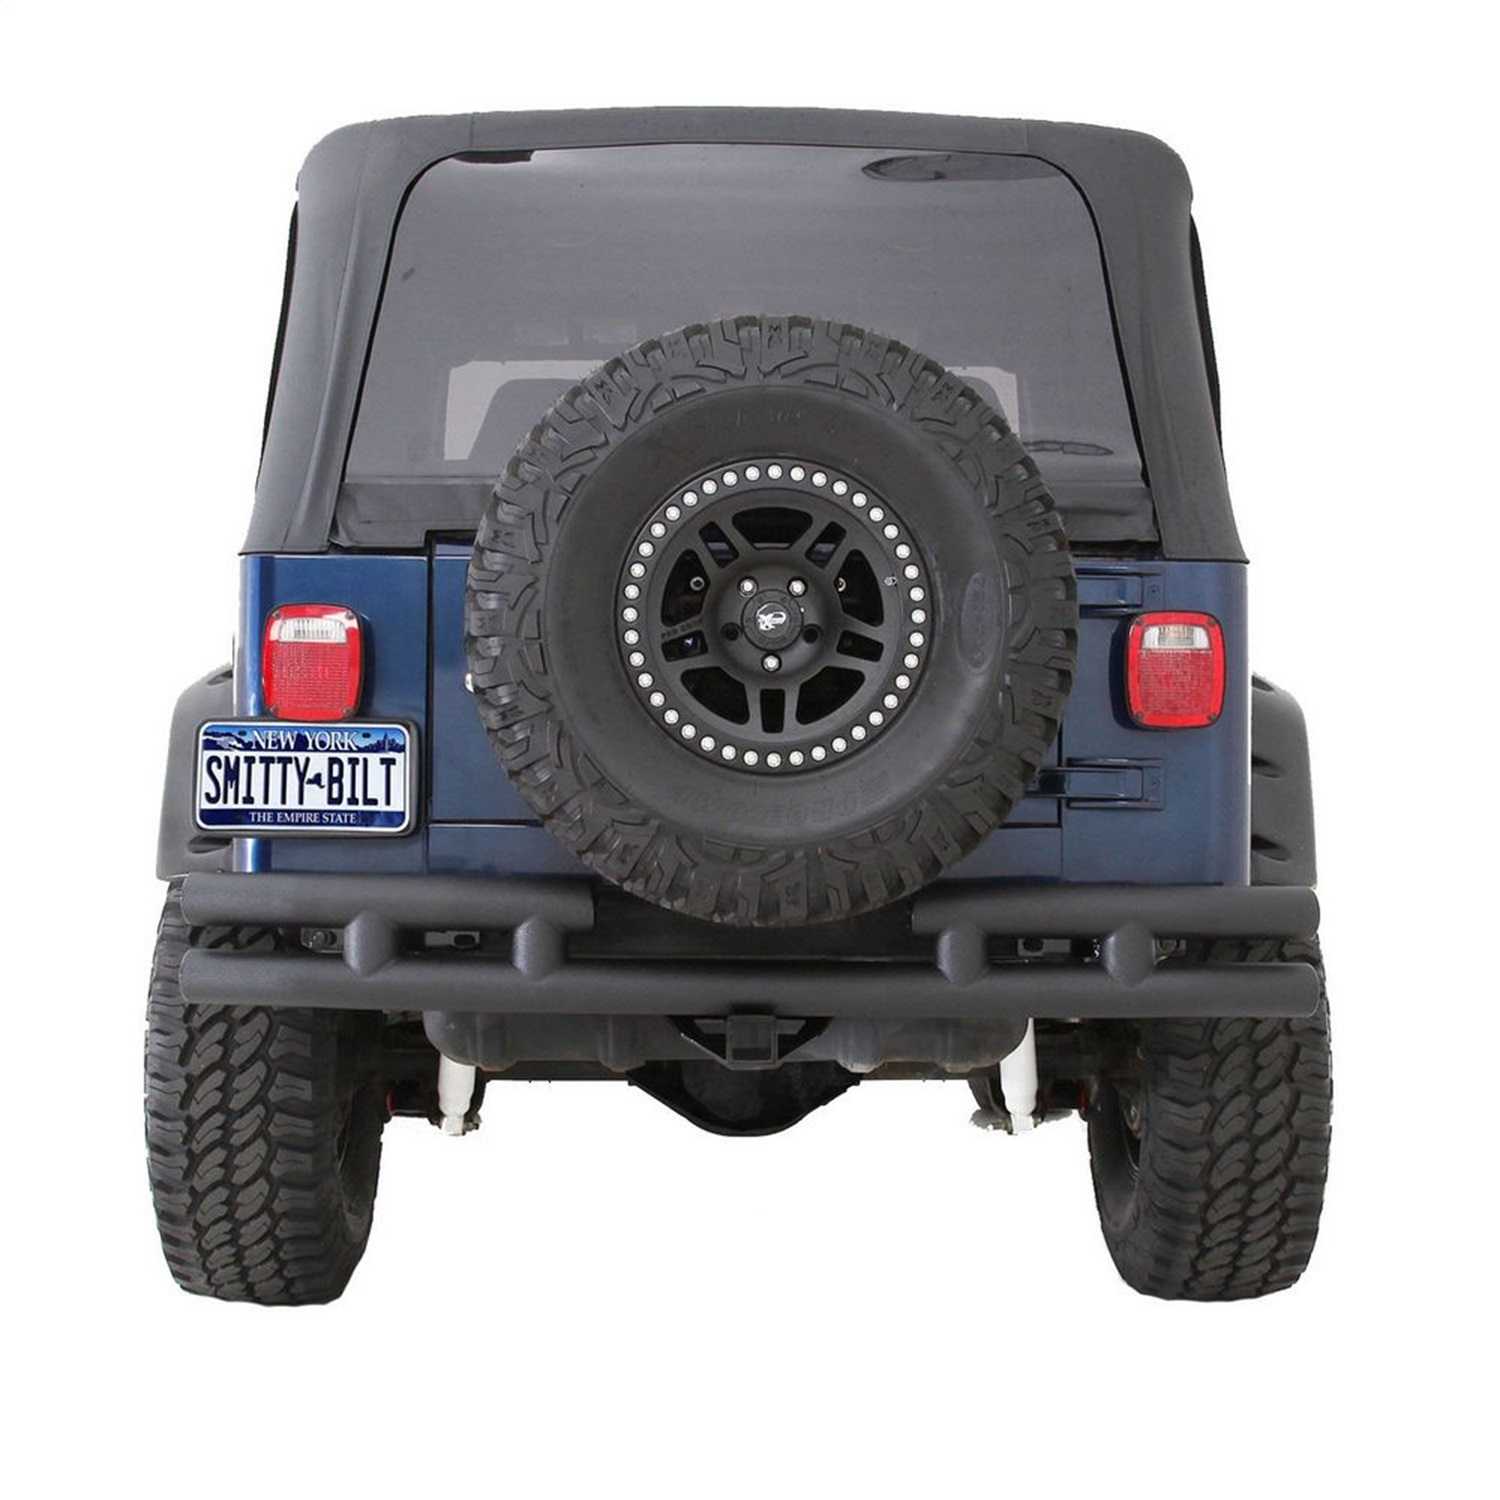 Smittybilt JB48-RT Tubular Bumper Rear Without Hitch For 07-13 Jeep JK Wrangler